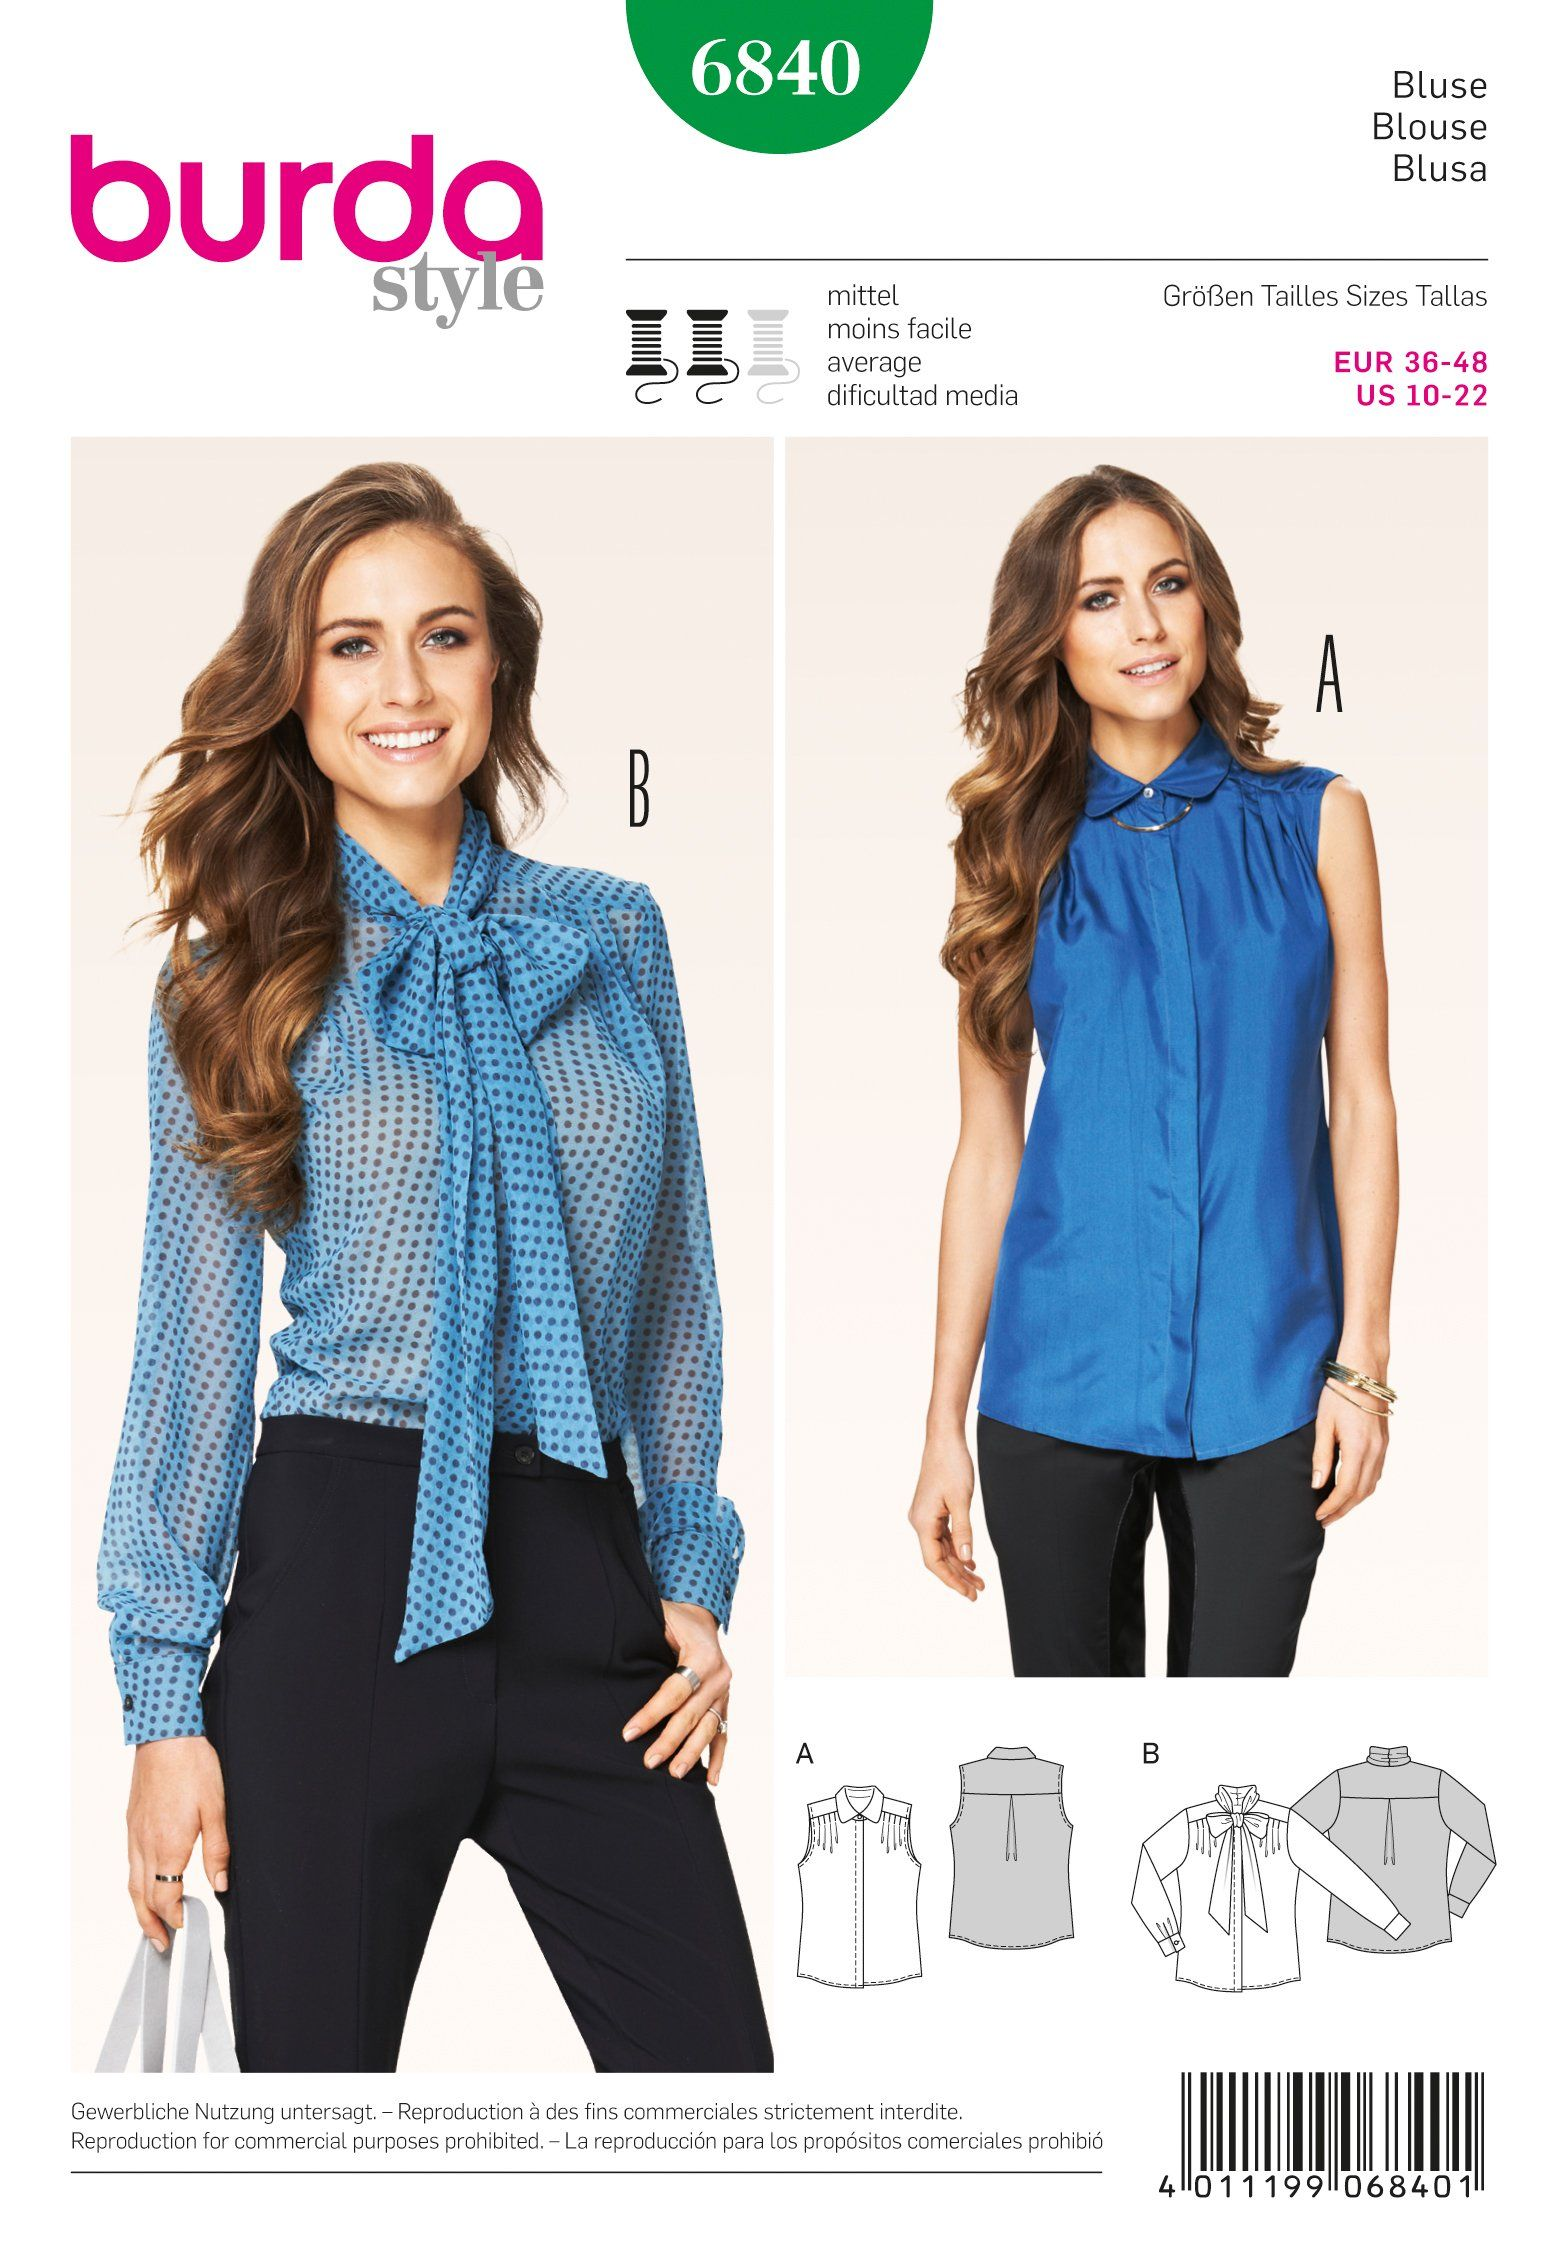 burda Schnittmuster Bluse 6840 | OMG, I wanna make this! | Pinterest ...